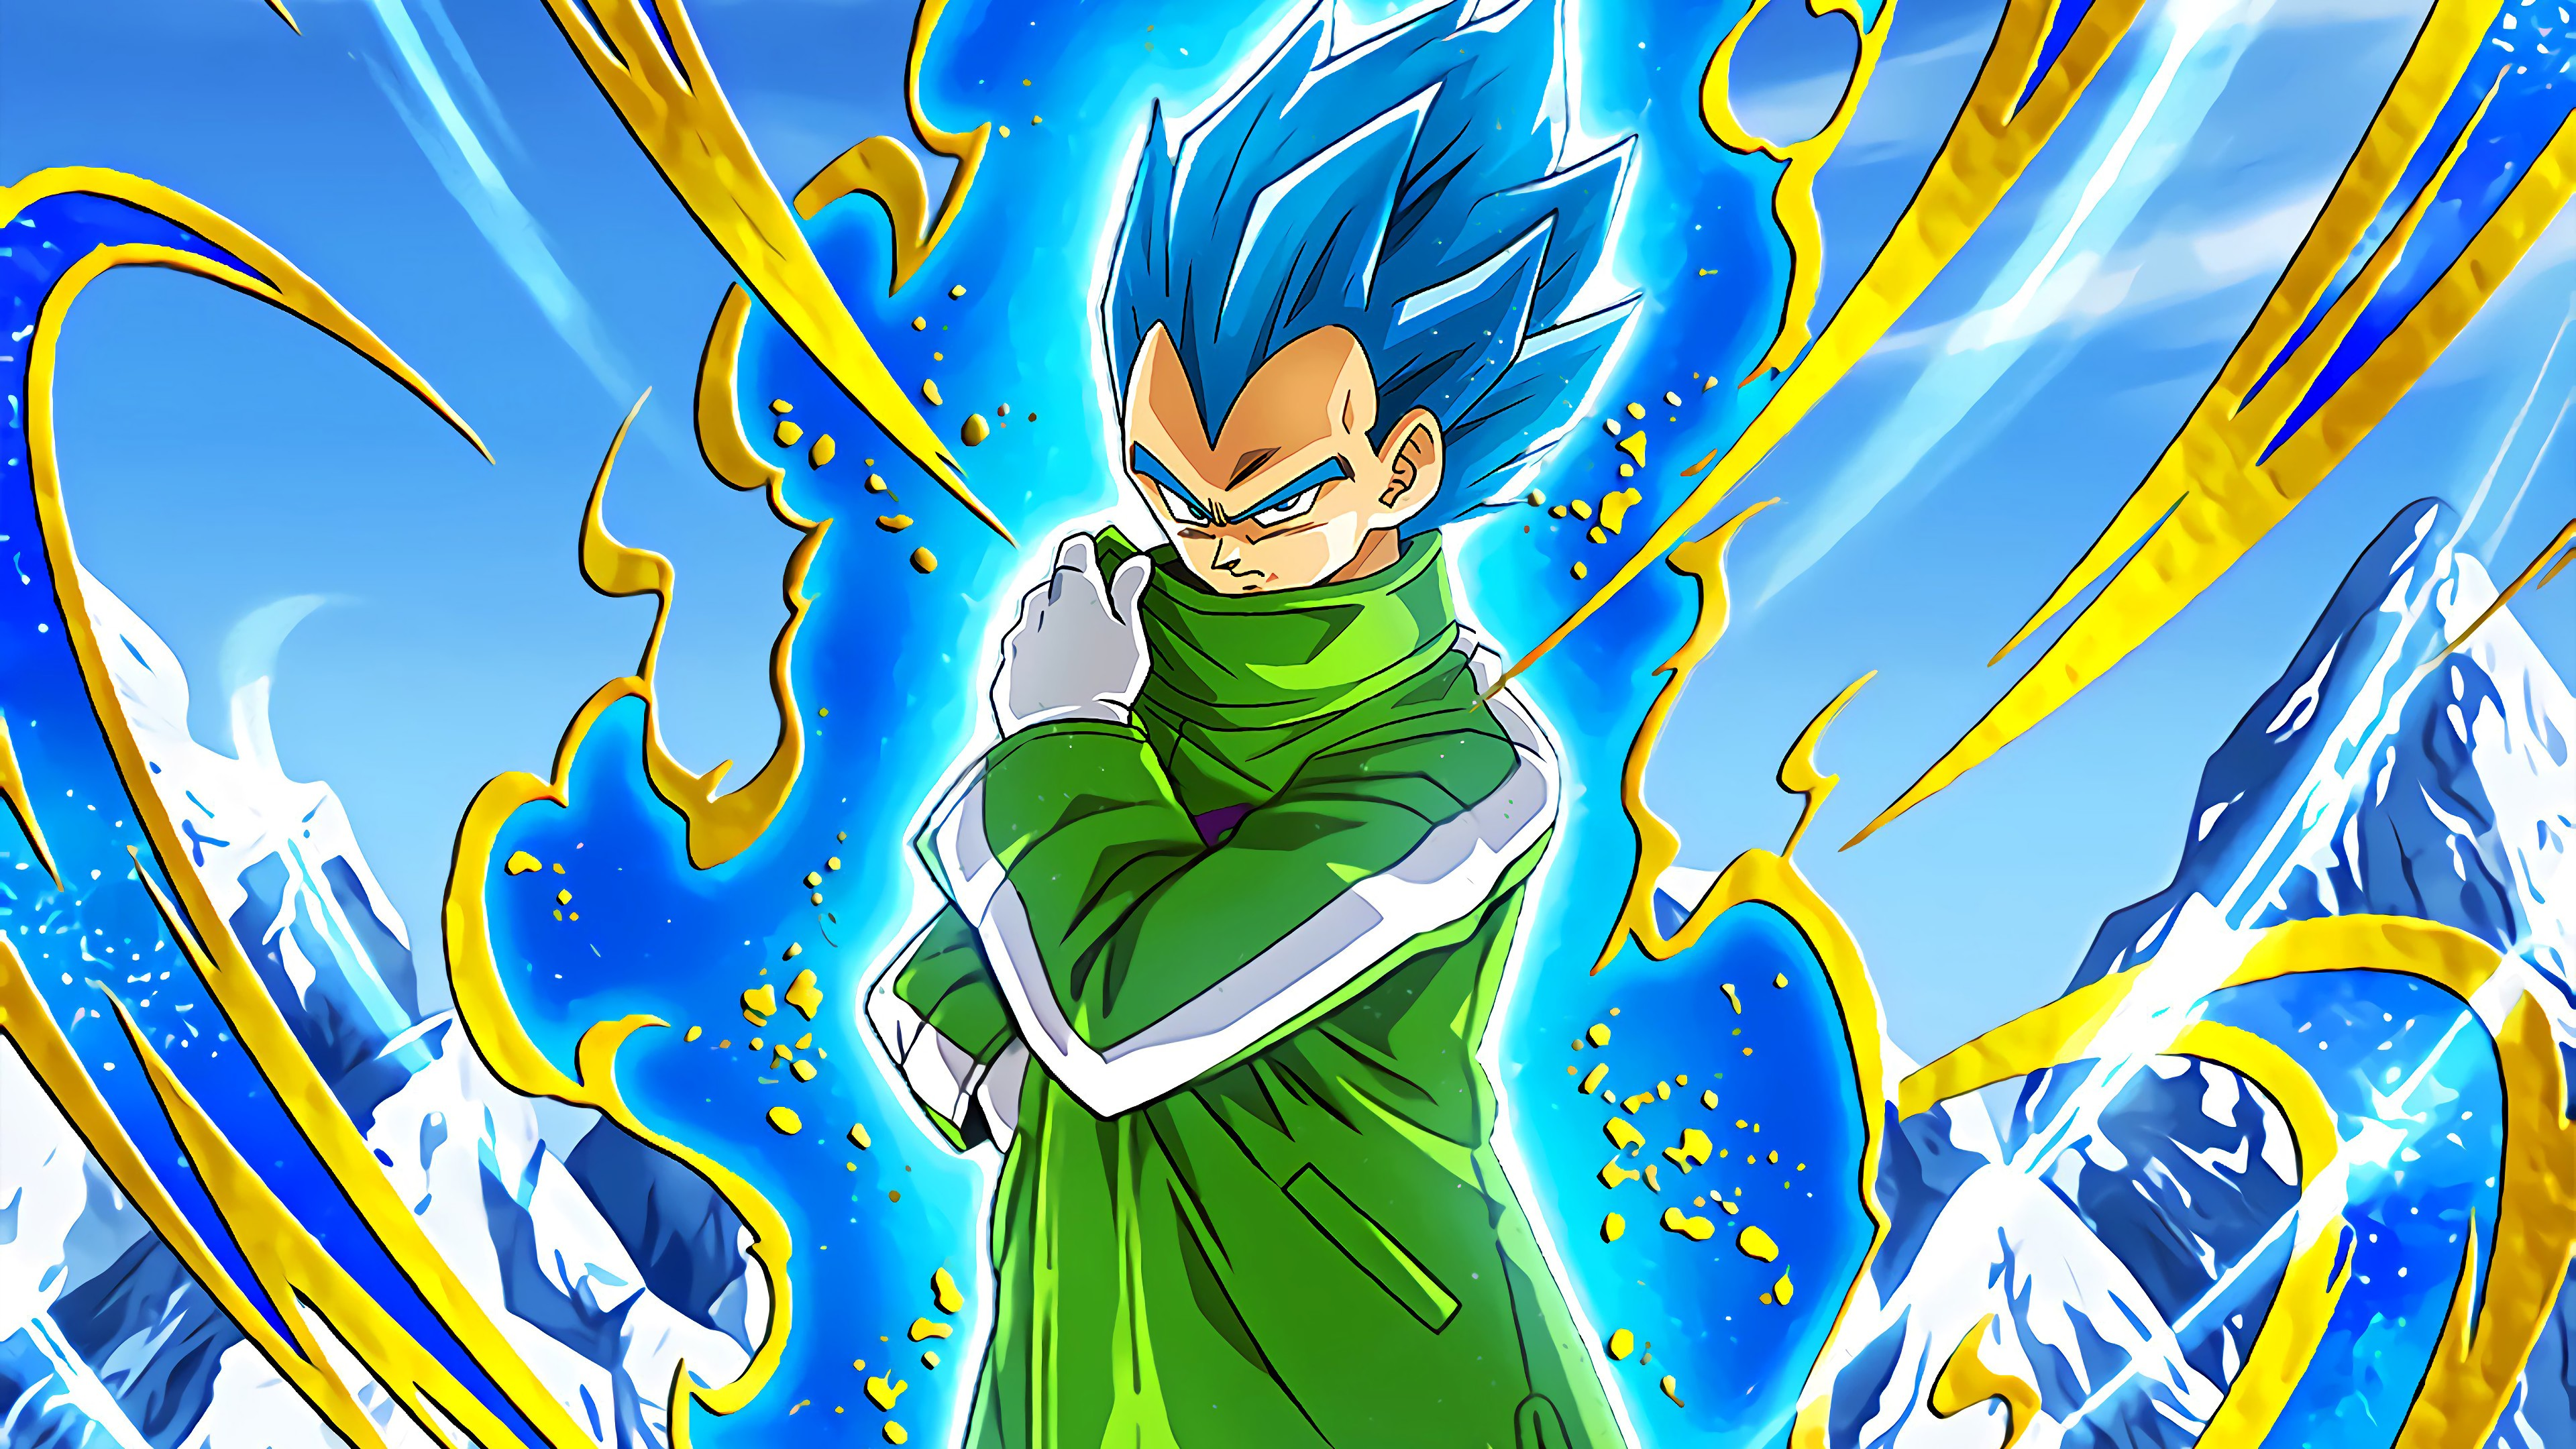 Super Saiyan Blue Vegeta Dragon Ball Super Anime Fondo De